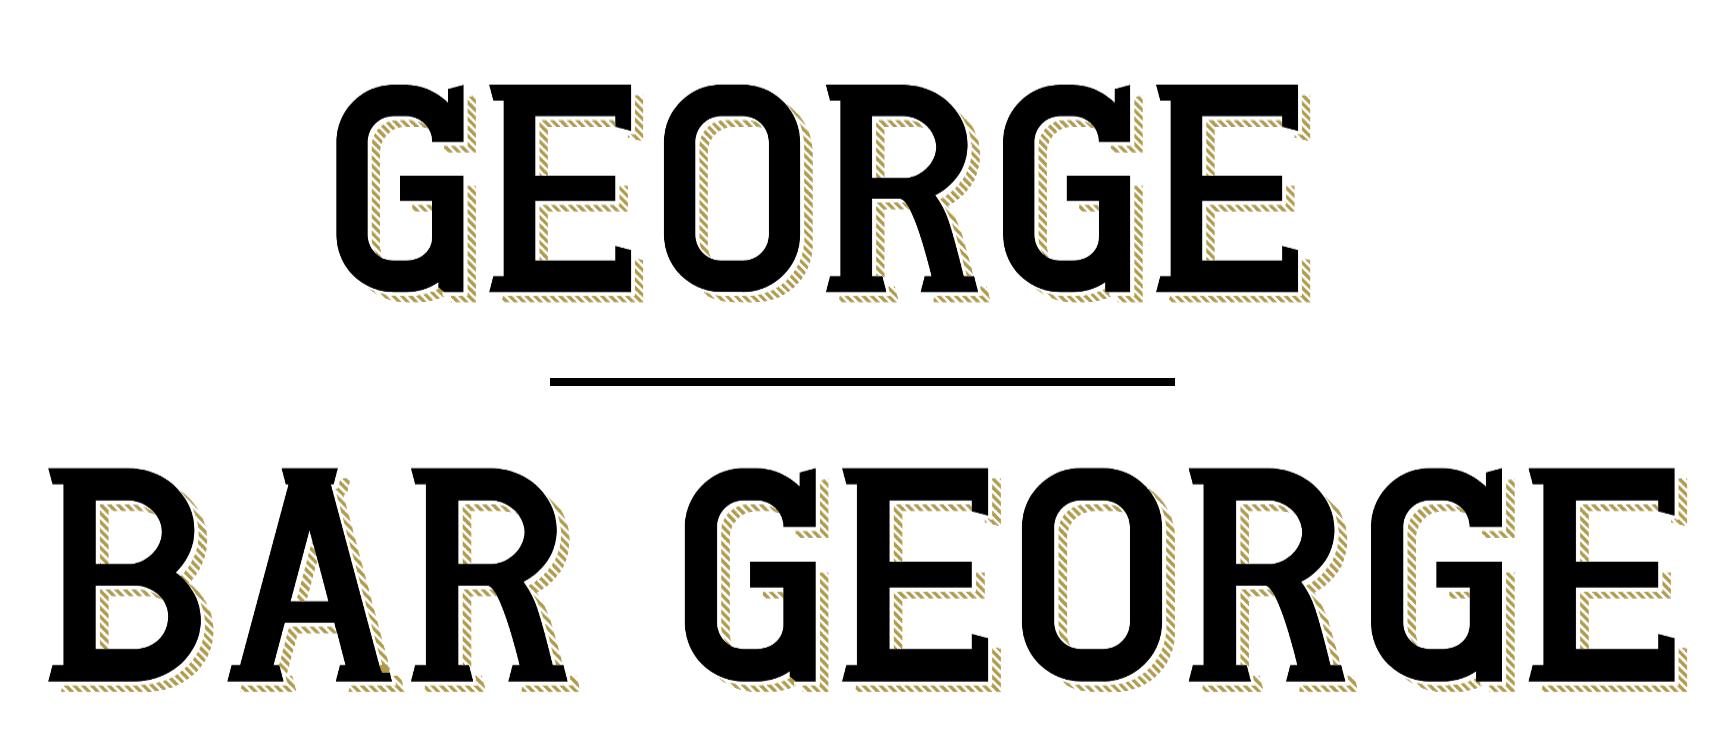 bar george & george logos - Untitled Page copy 2.png